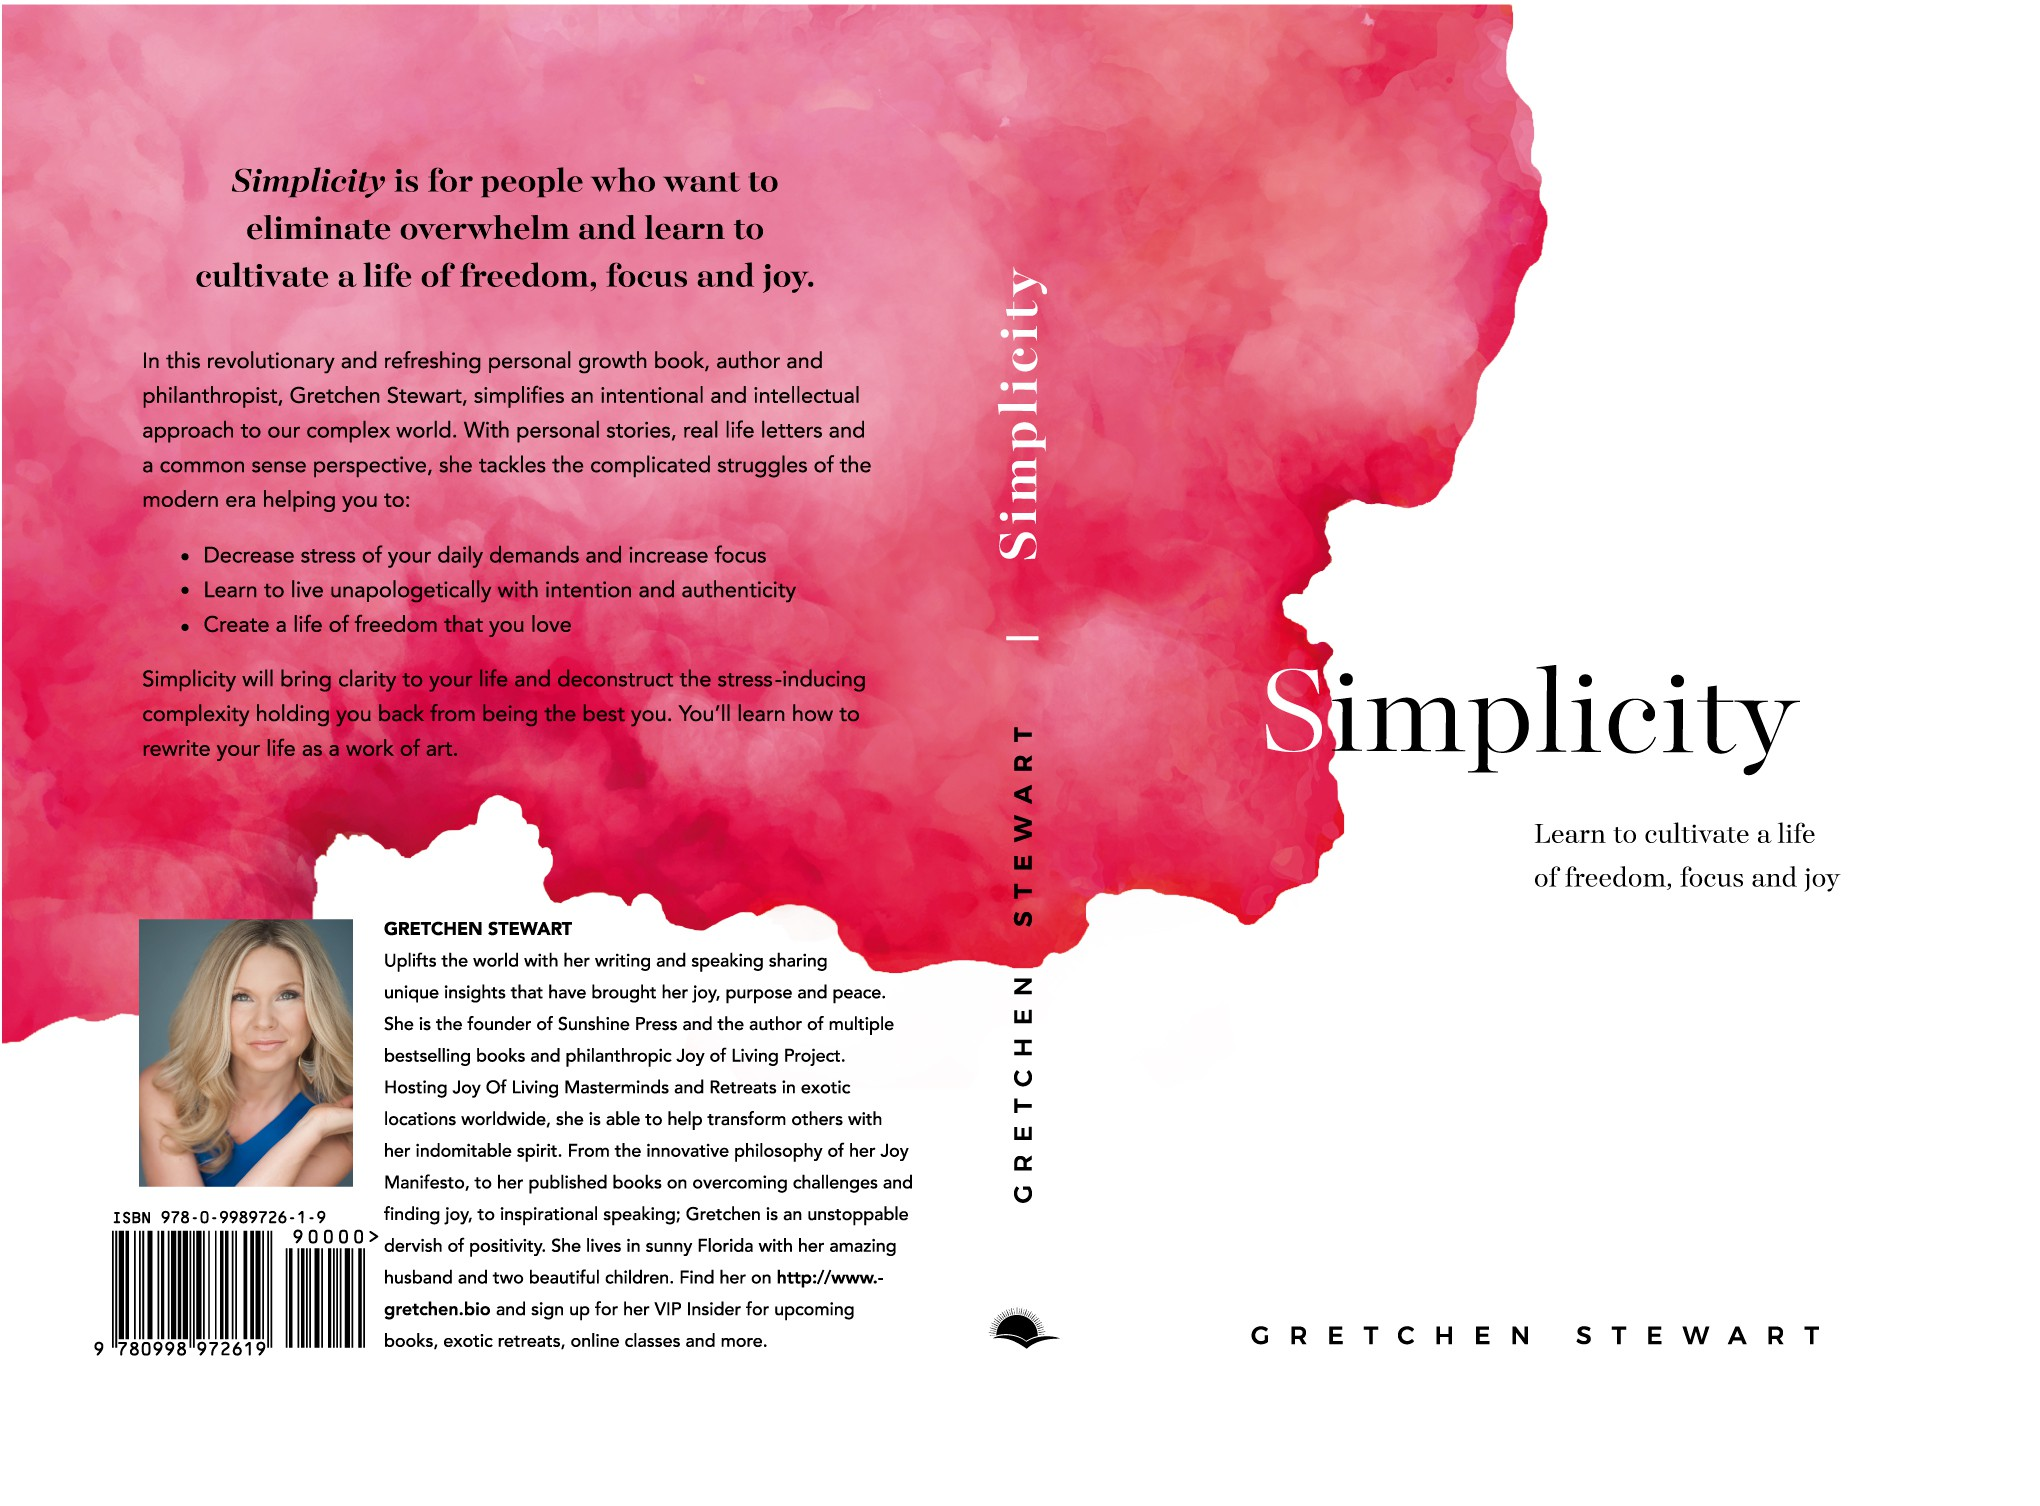 Design a bold, minimalistic, innovative and abstract cover for my book Simplicity